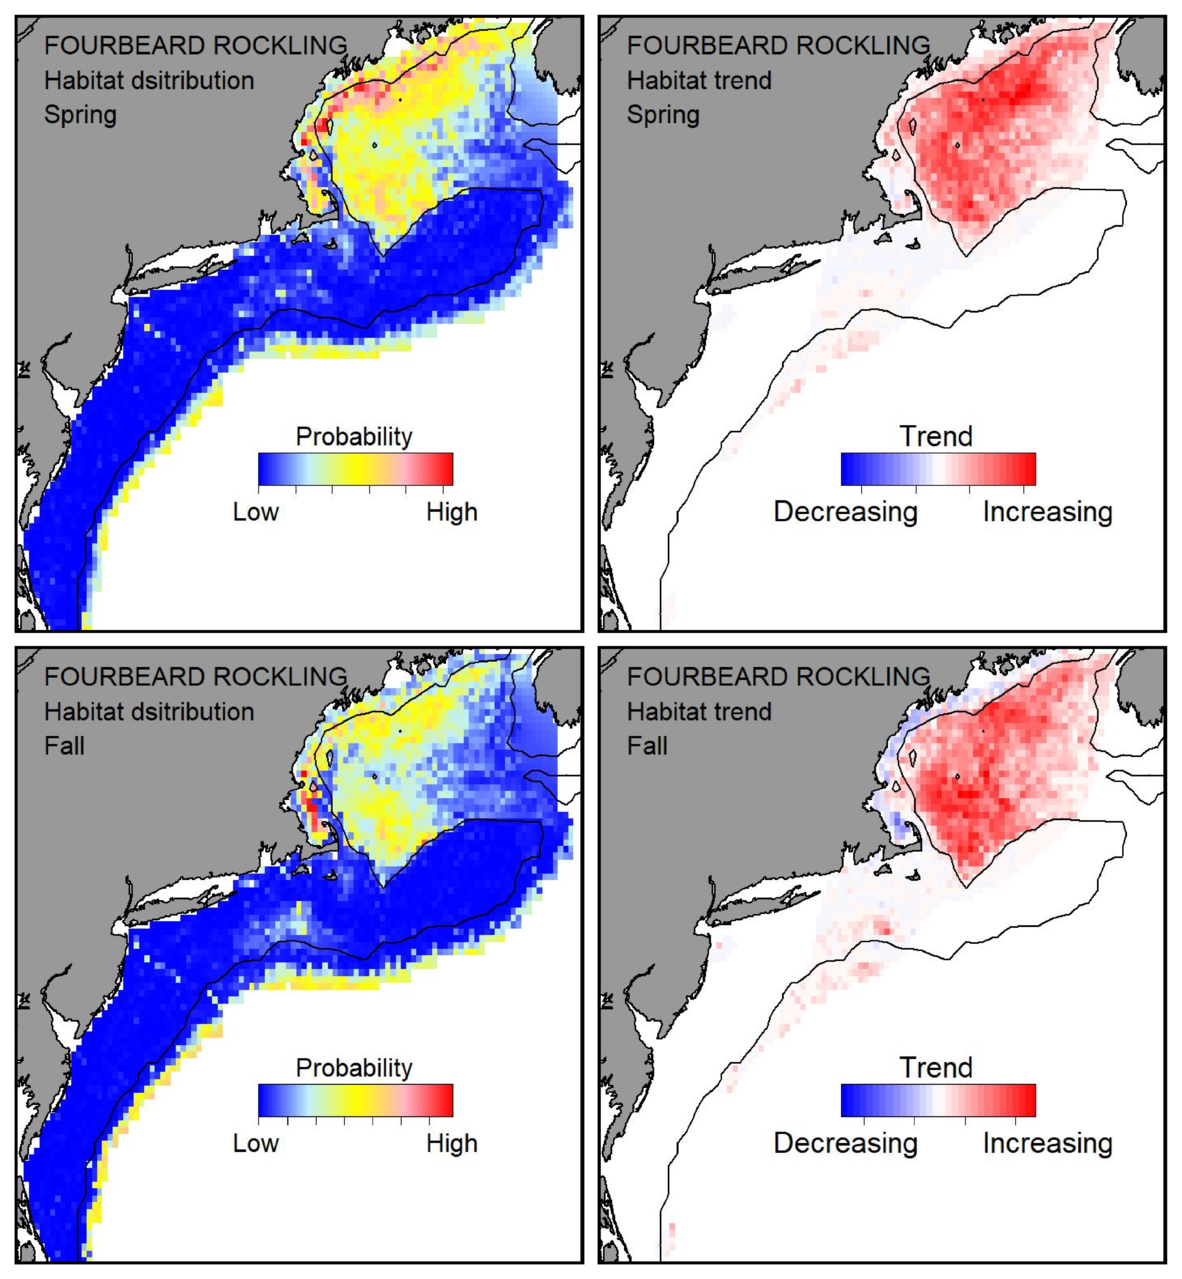 Top row: Probable habitat distribution for fourbeard rockling showing the highest concentration and increasing trend in the Gulf of Maine during the spring. Bottom row: Probable habitat distribution for fourbeard rockling showing the highest concentration and increasing trend in the Gulf of Maine during the fall.